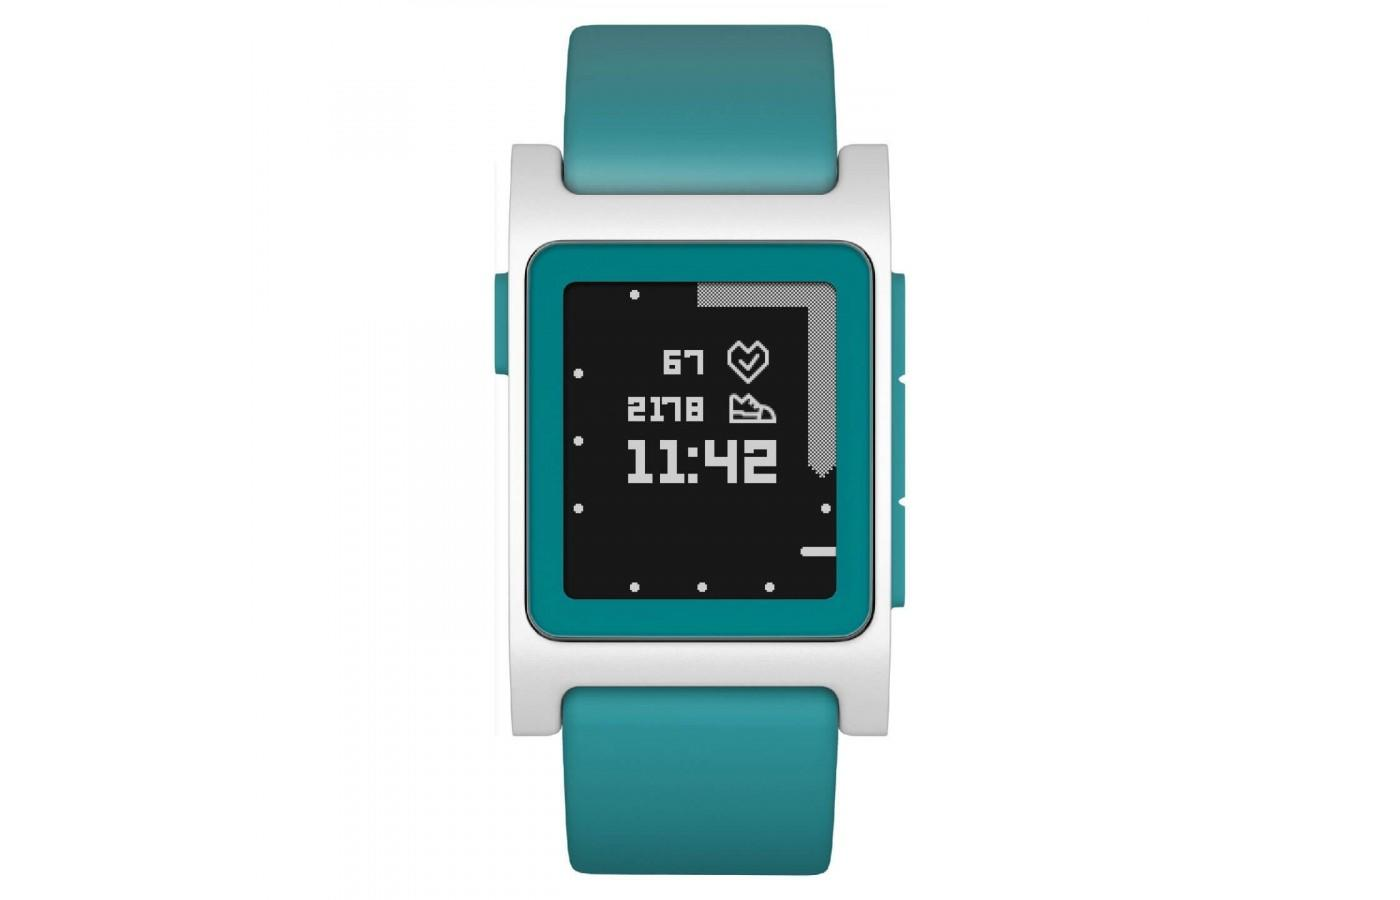 This is a larger size smart watch, which does have its benefits